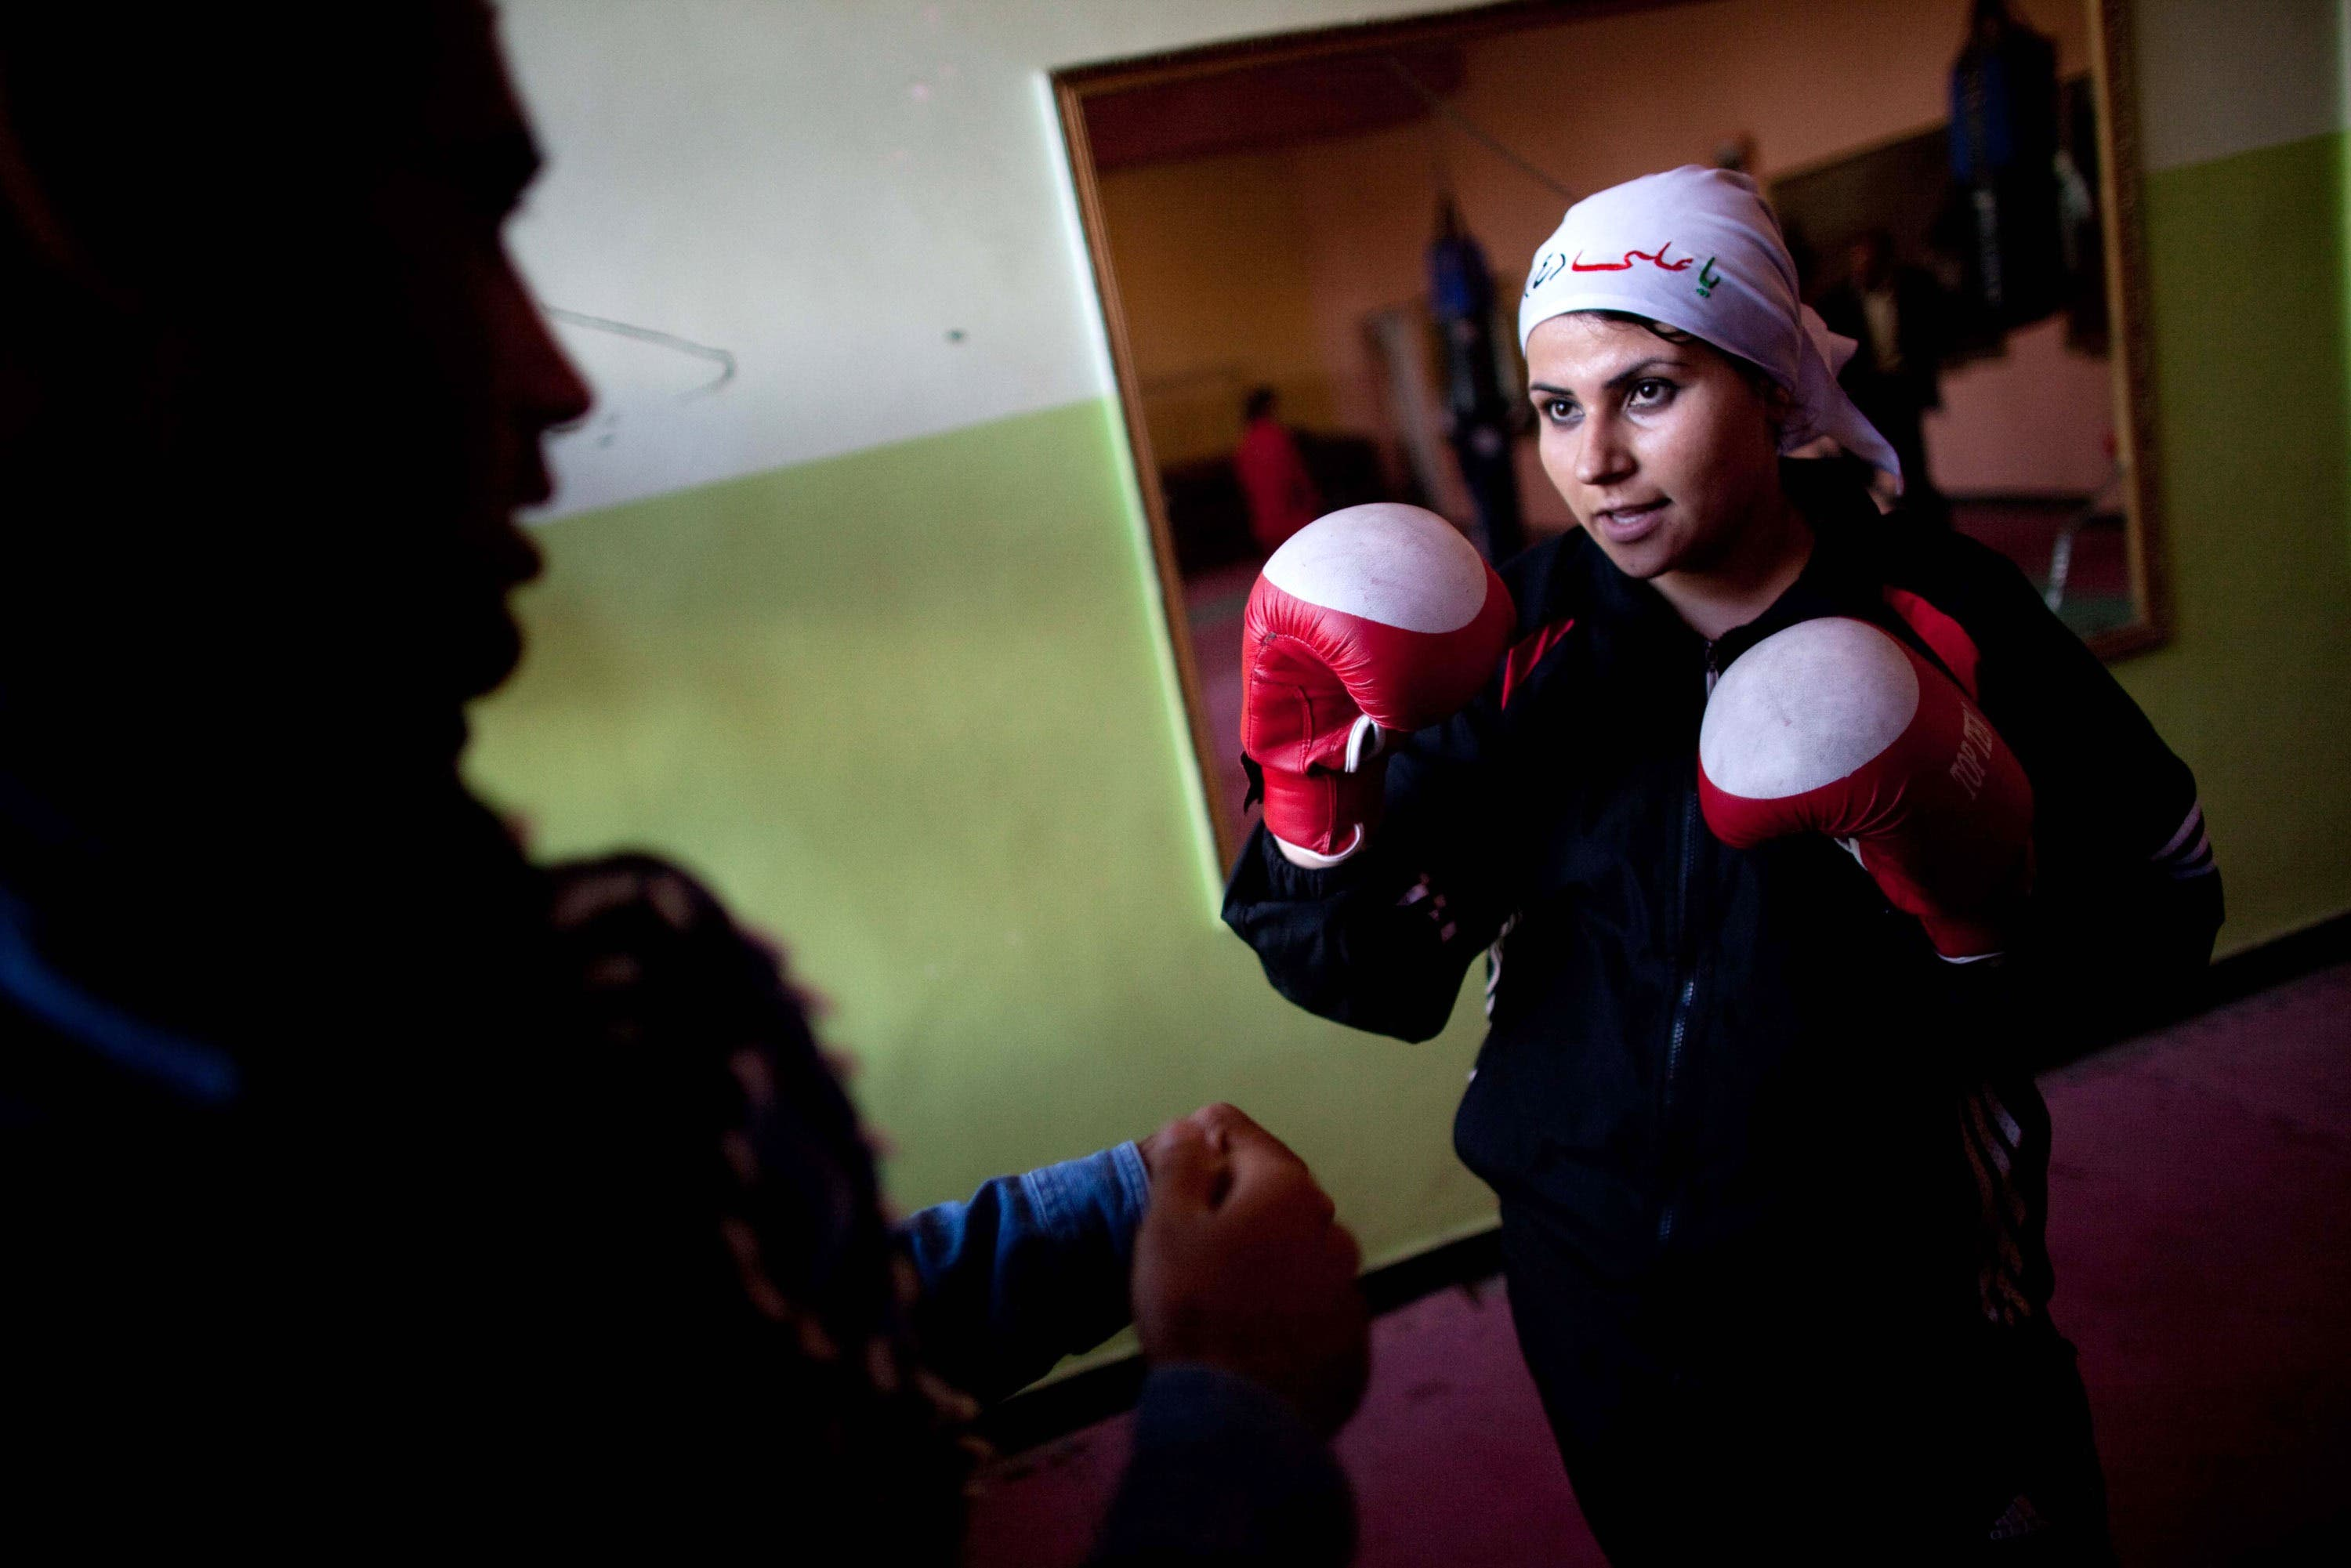 An Afghani woman in a head scarf playing boxing.